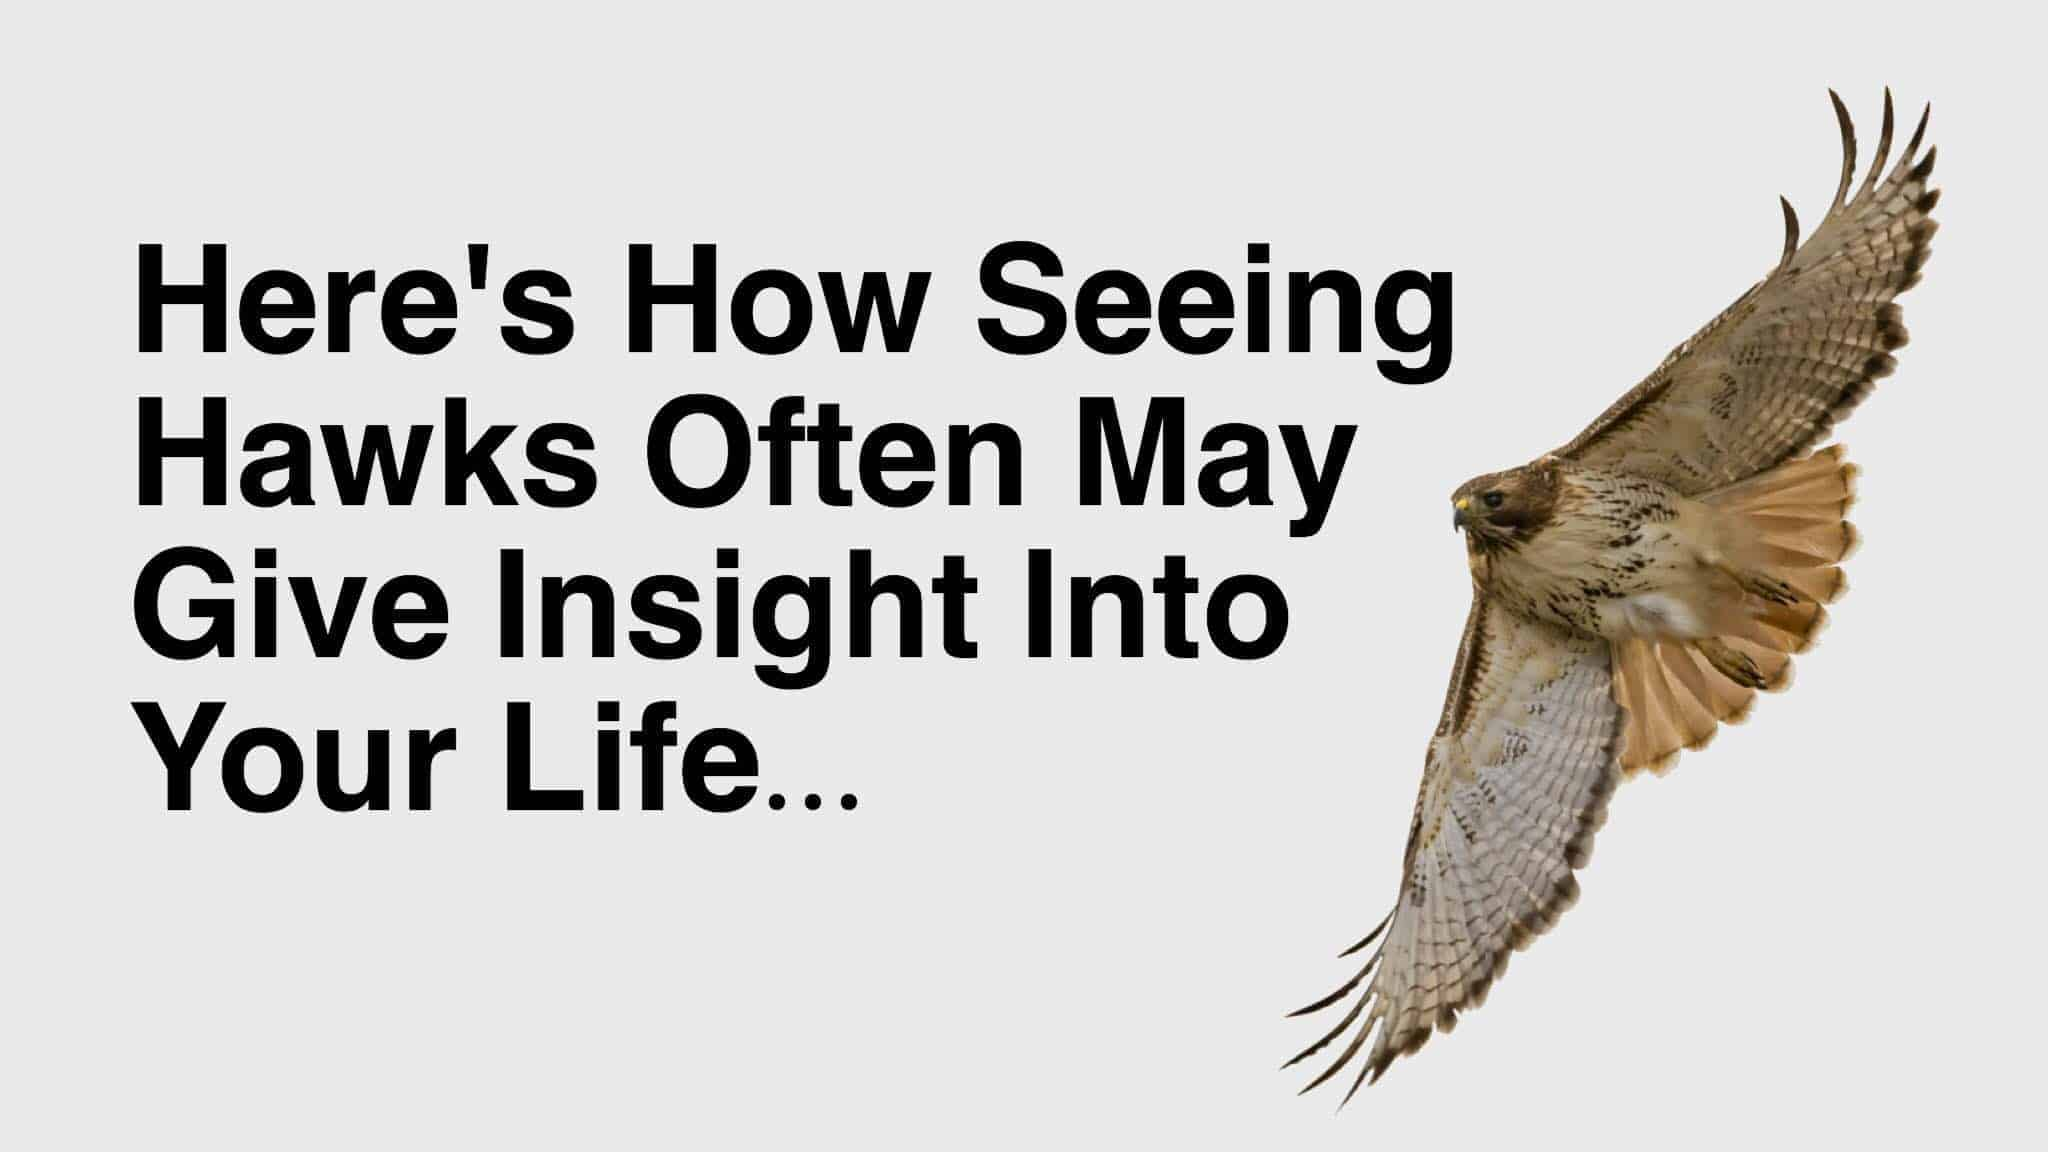 Heres How Seeing Hawks Often May Give Insight Into Your Life